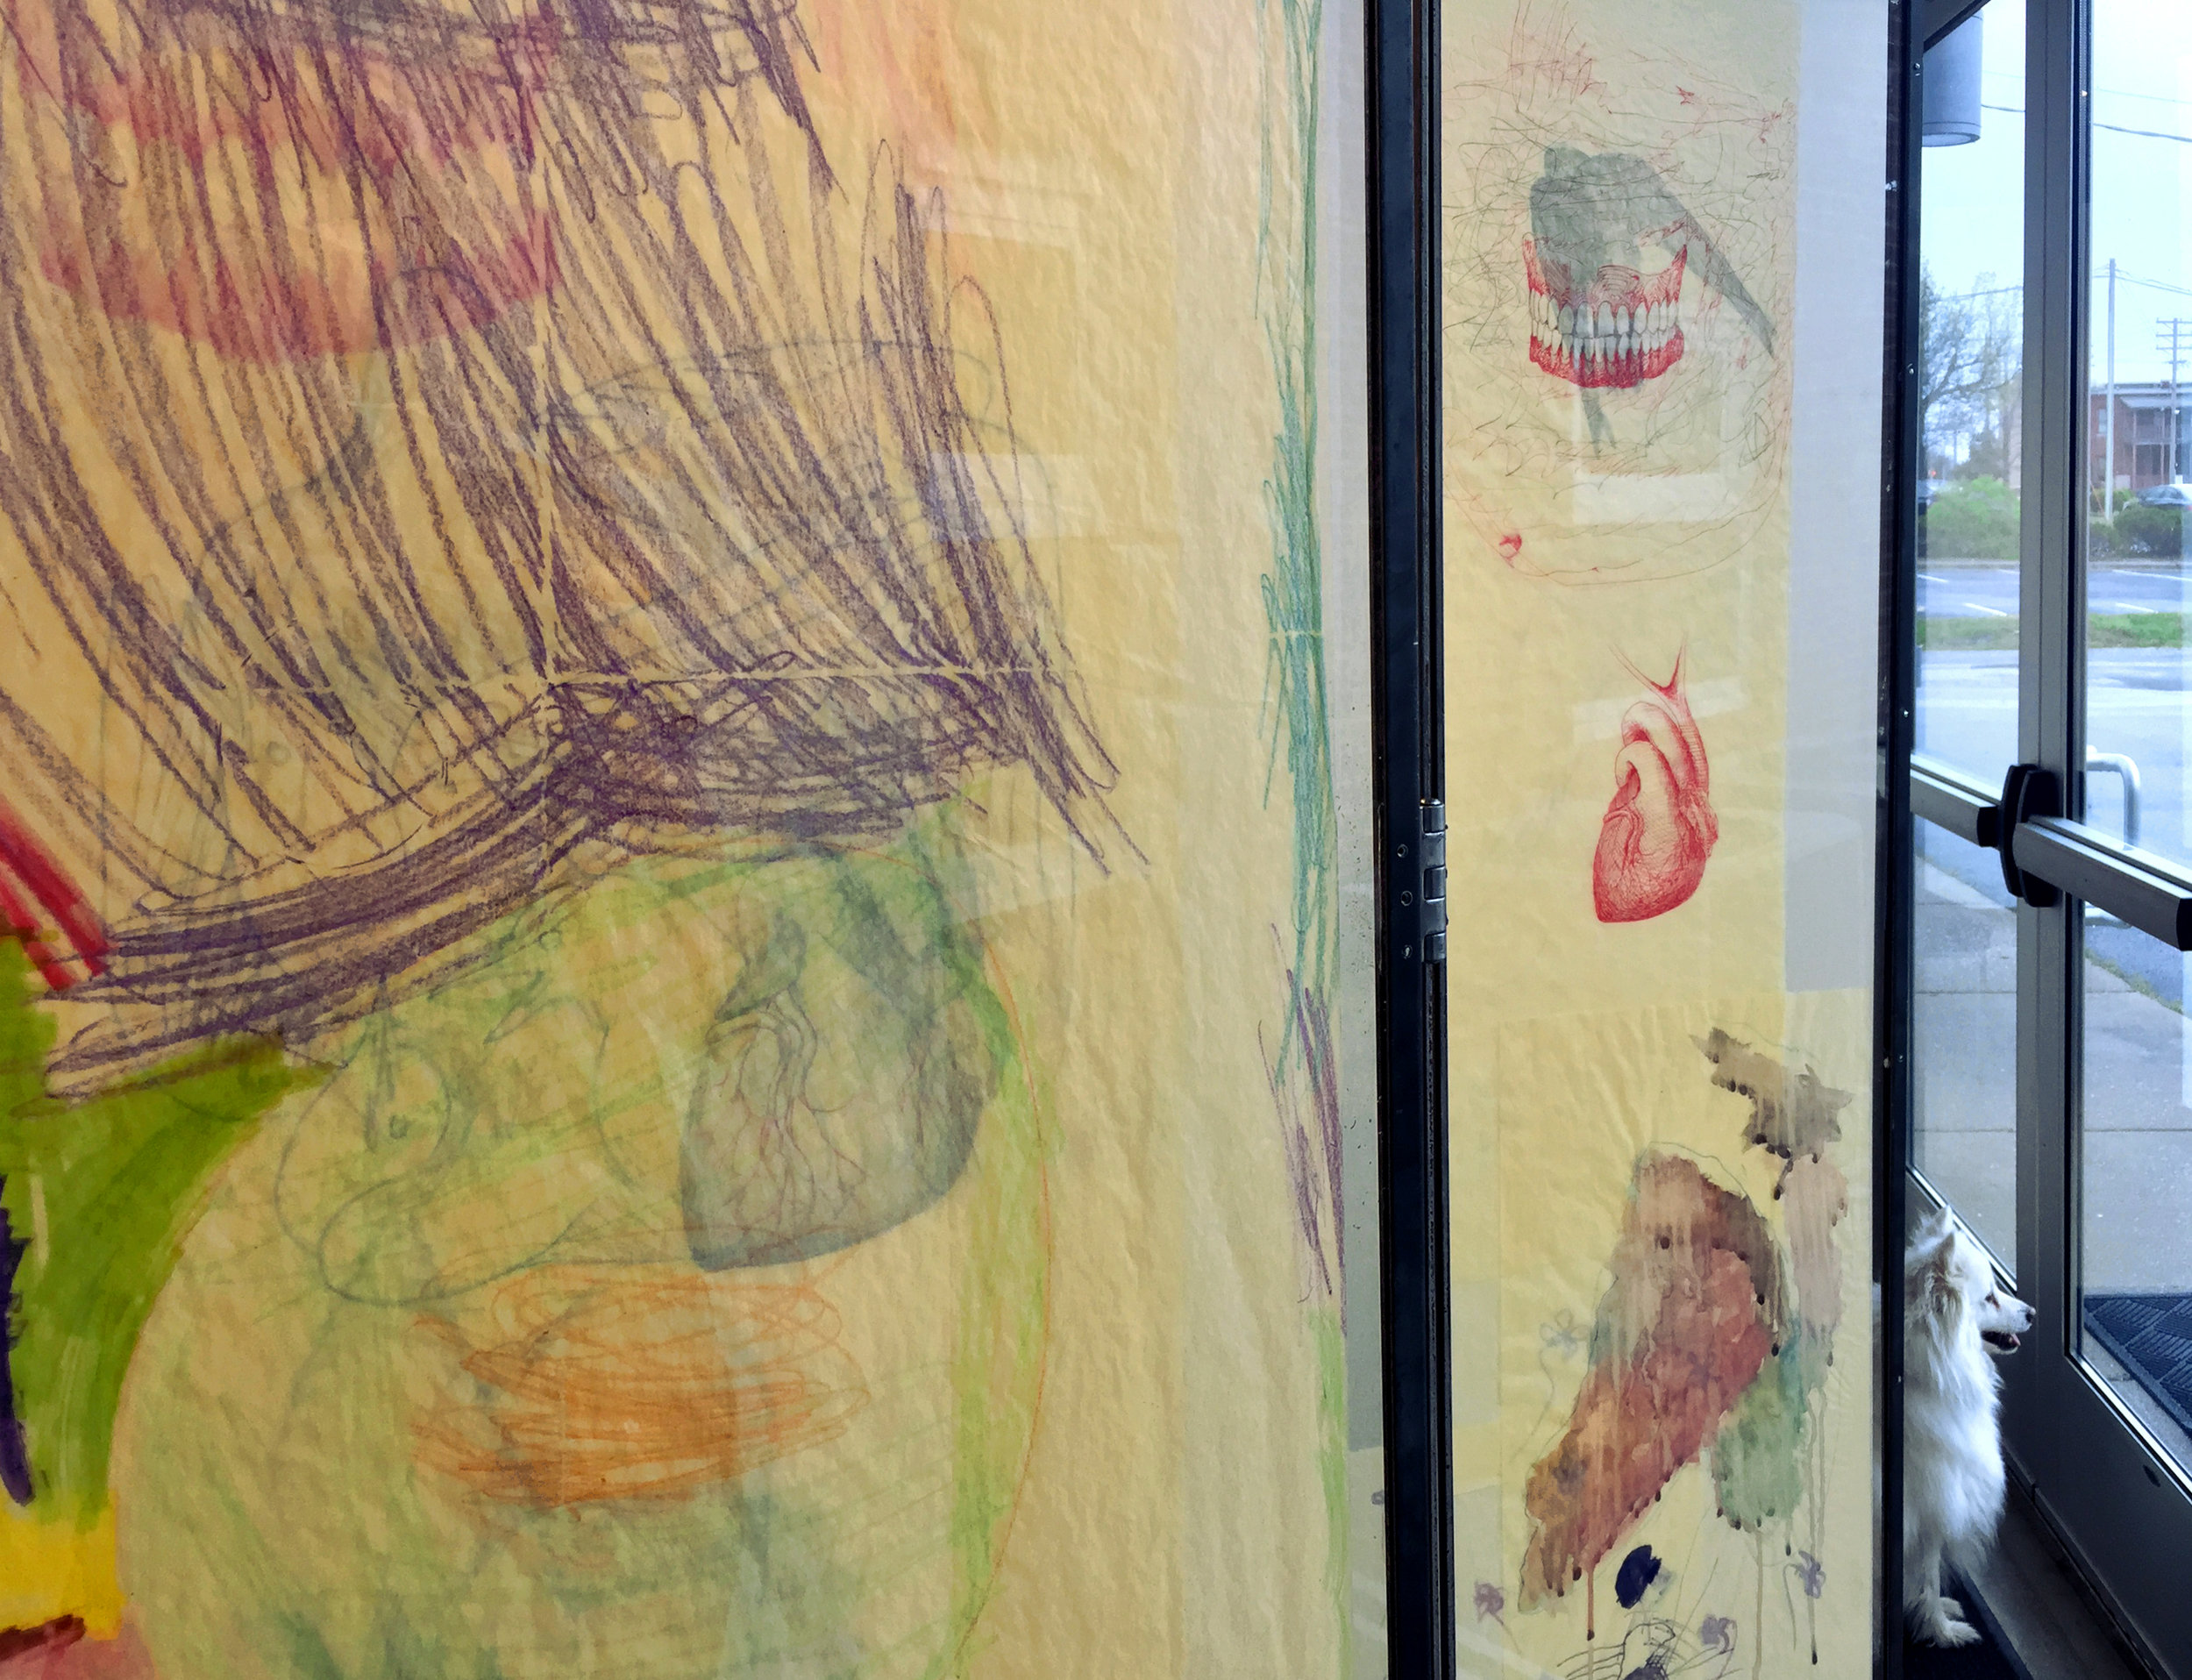 Katherine Rutecki,  Trifold Screen,  detail, mixed media on paper, steel, plexiglass, with drawing inclusions by Frankie June Jacomb (daughter), 140x30x185